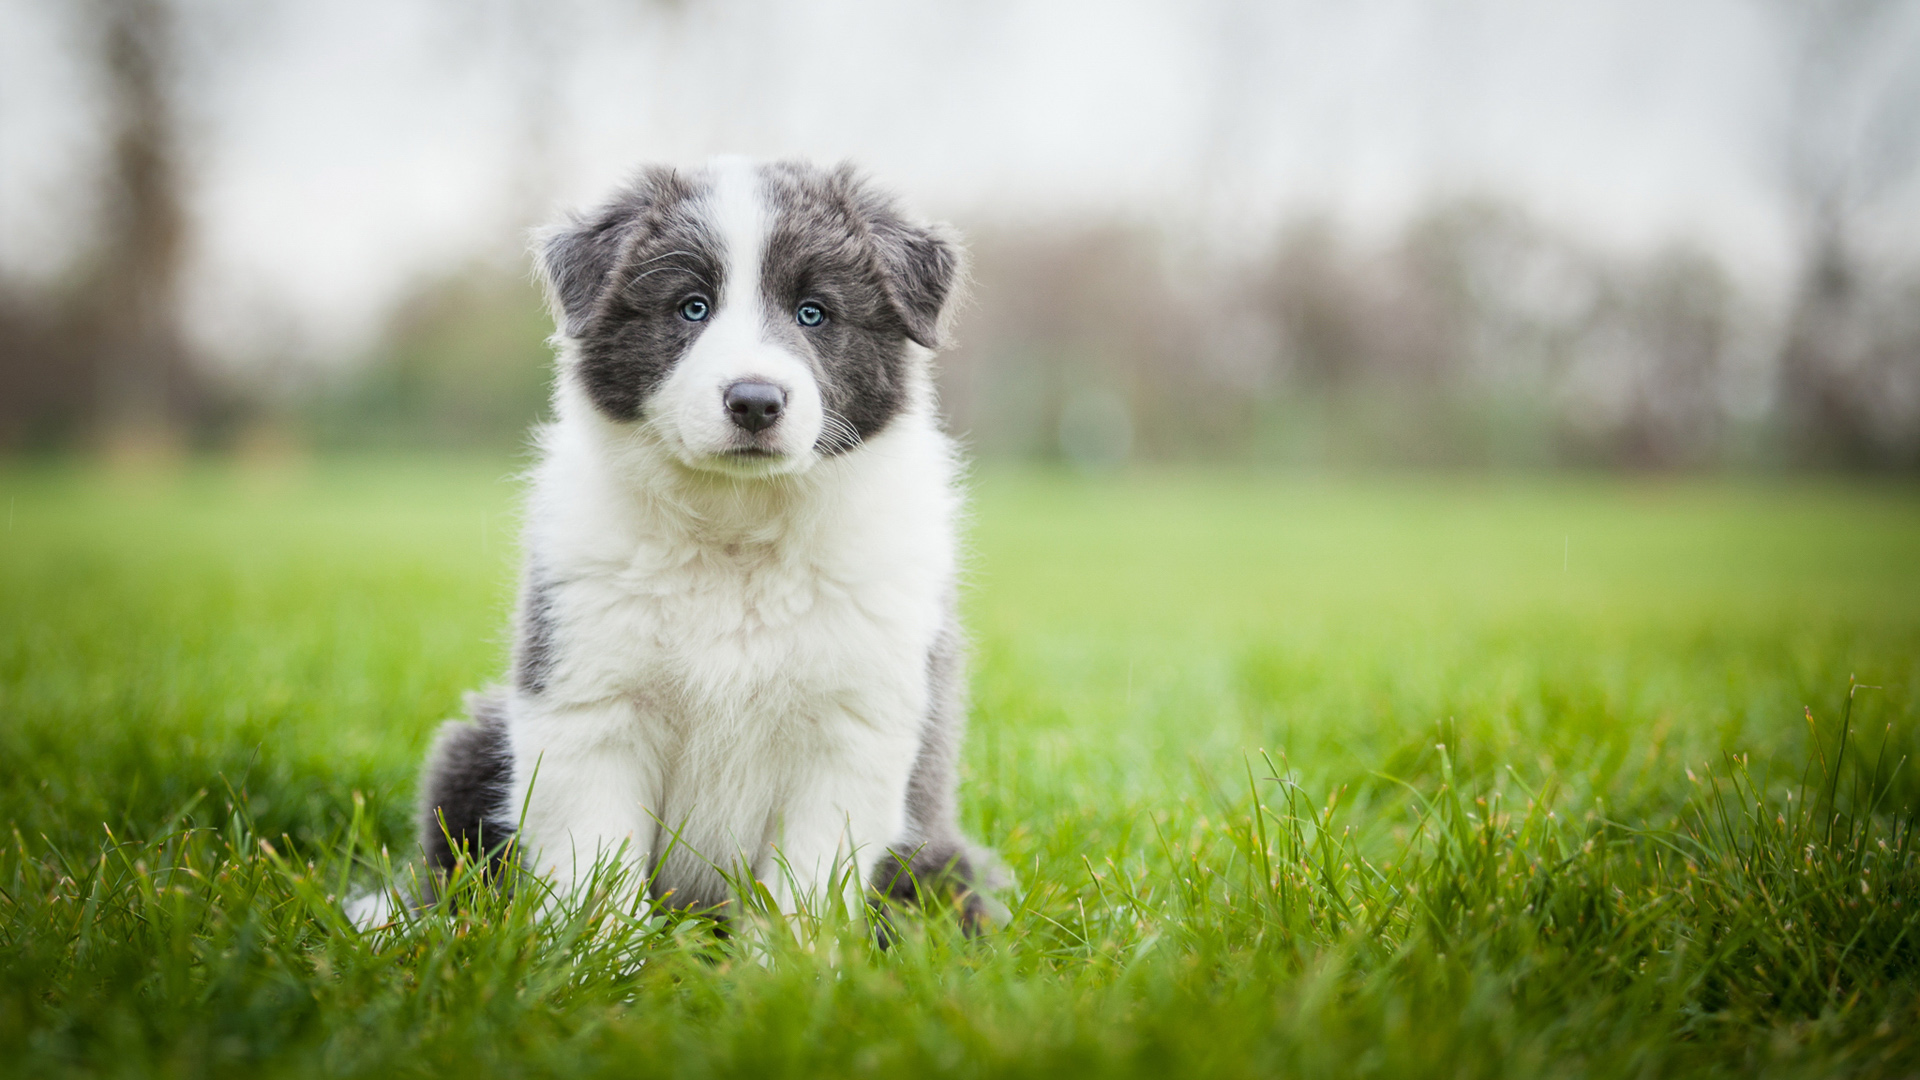 large breed puppy sitting on grass